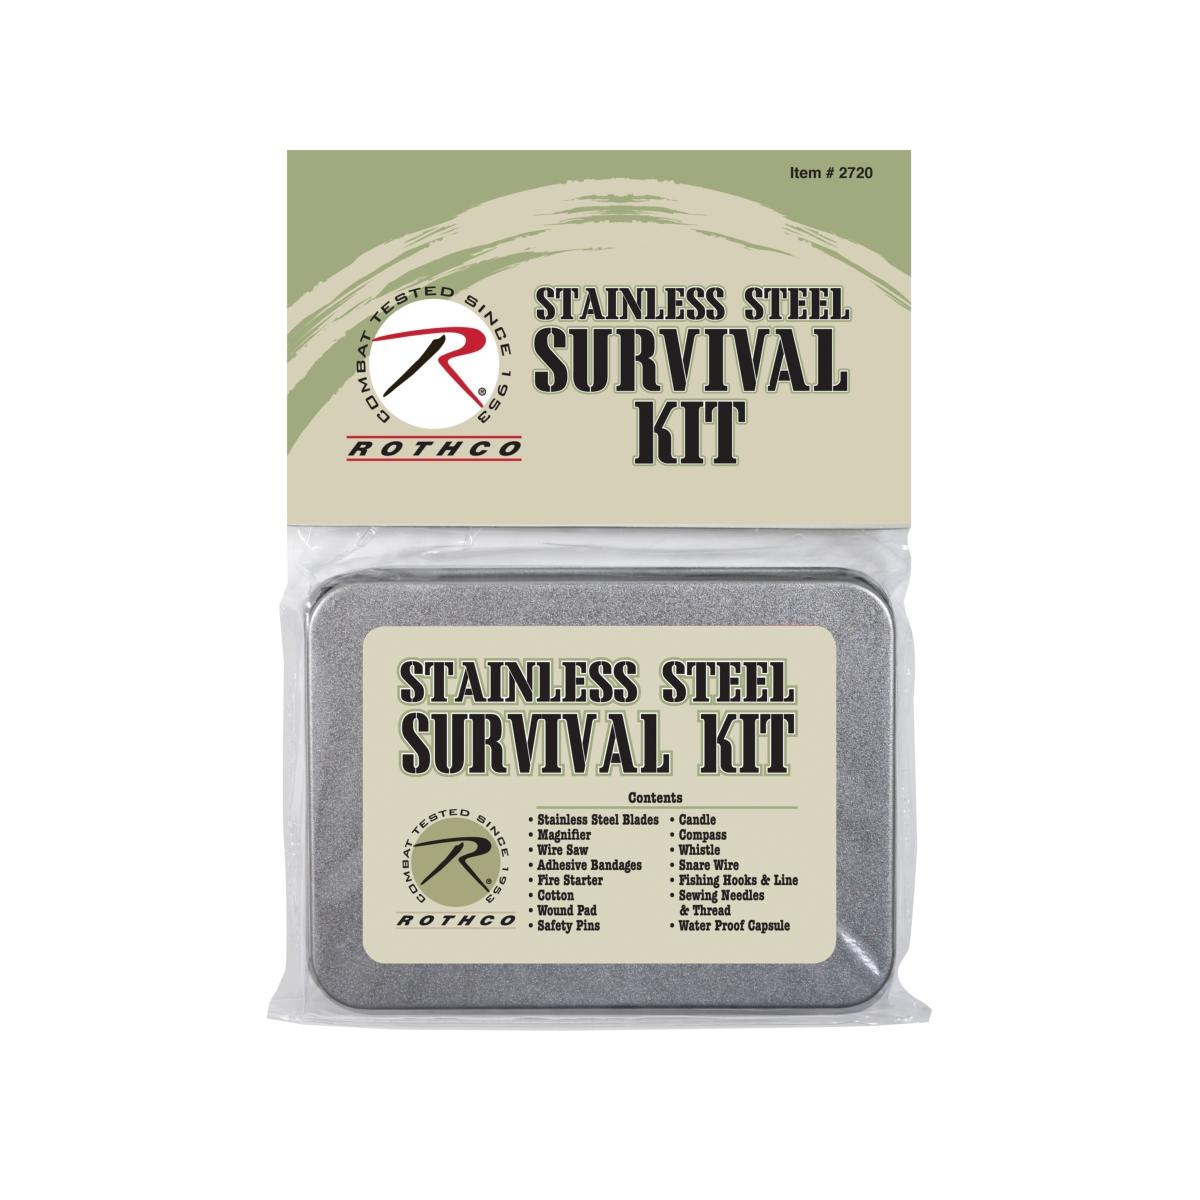 Rothco Compact Survival Kit in a Small Tin